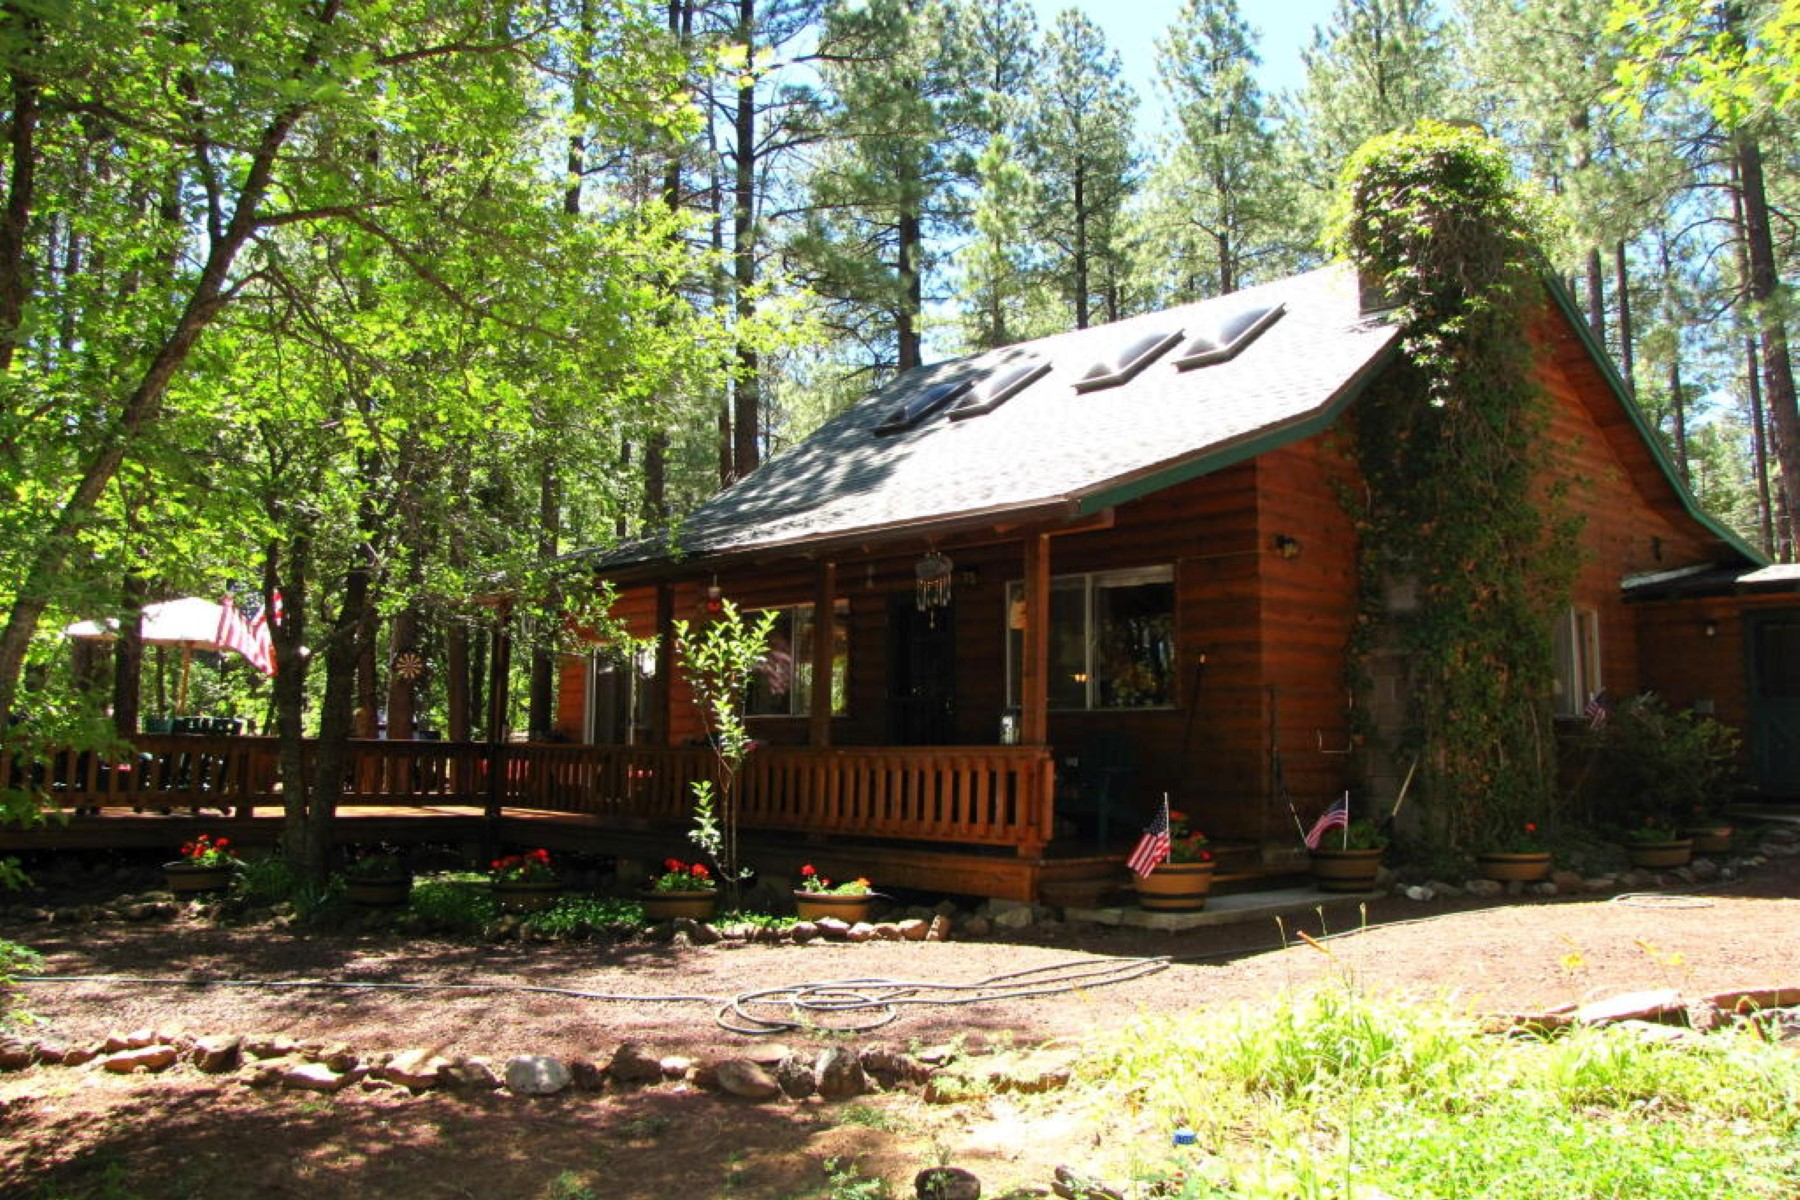 Maison unifamiliale pour l Vente à Charming and updated cabin in White Mountain Summer Homes 2137 Jackrabbit Dr Pinetop, Arizona, 85935 États-Unis